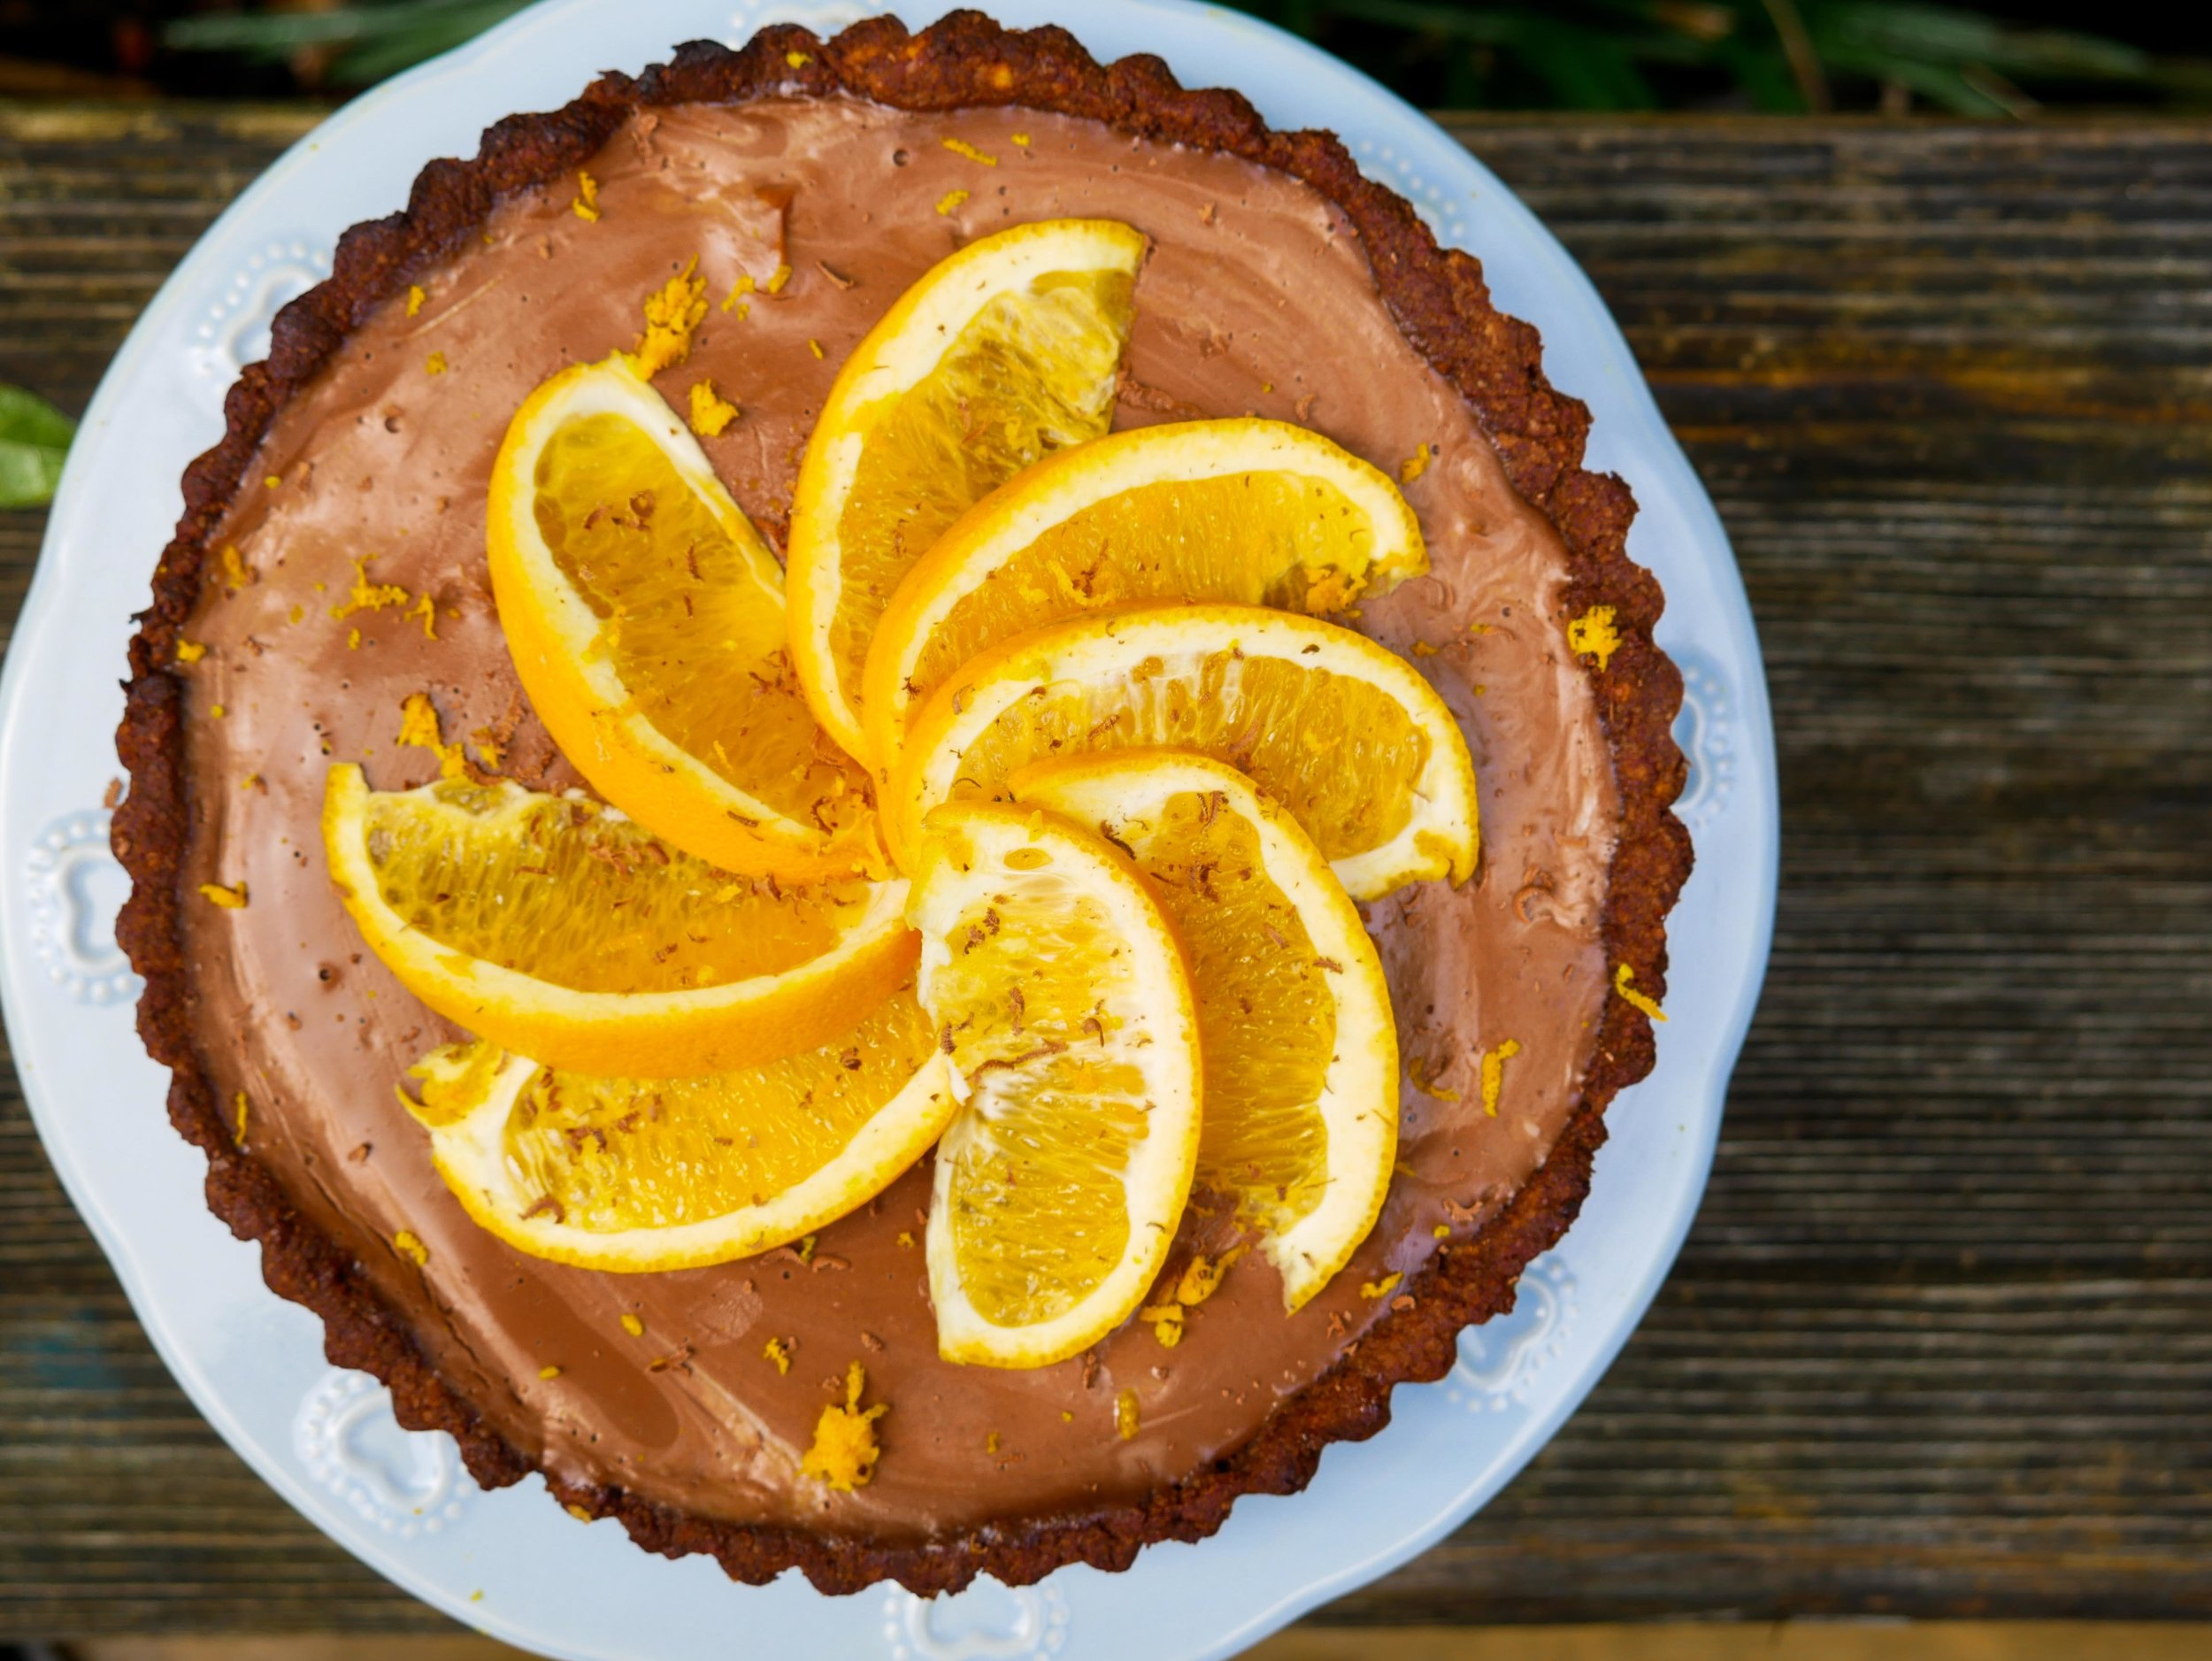 Orange and chocolate tart 4.jpg